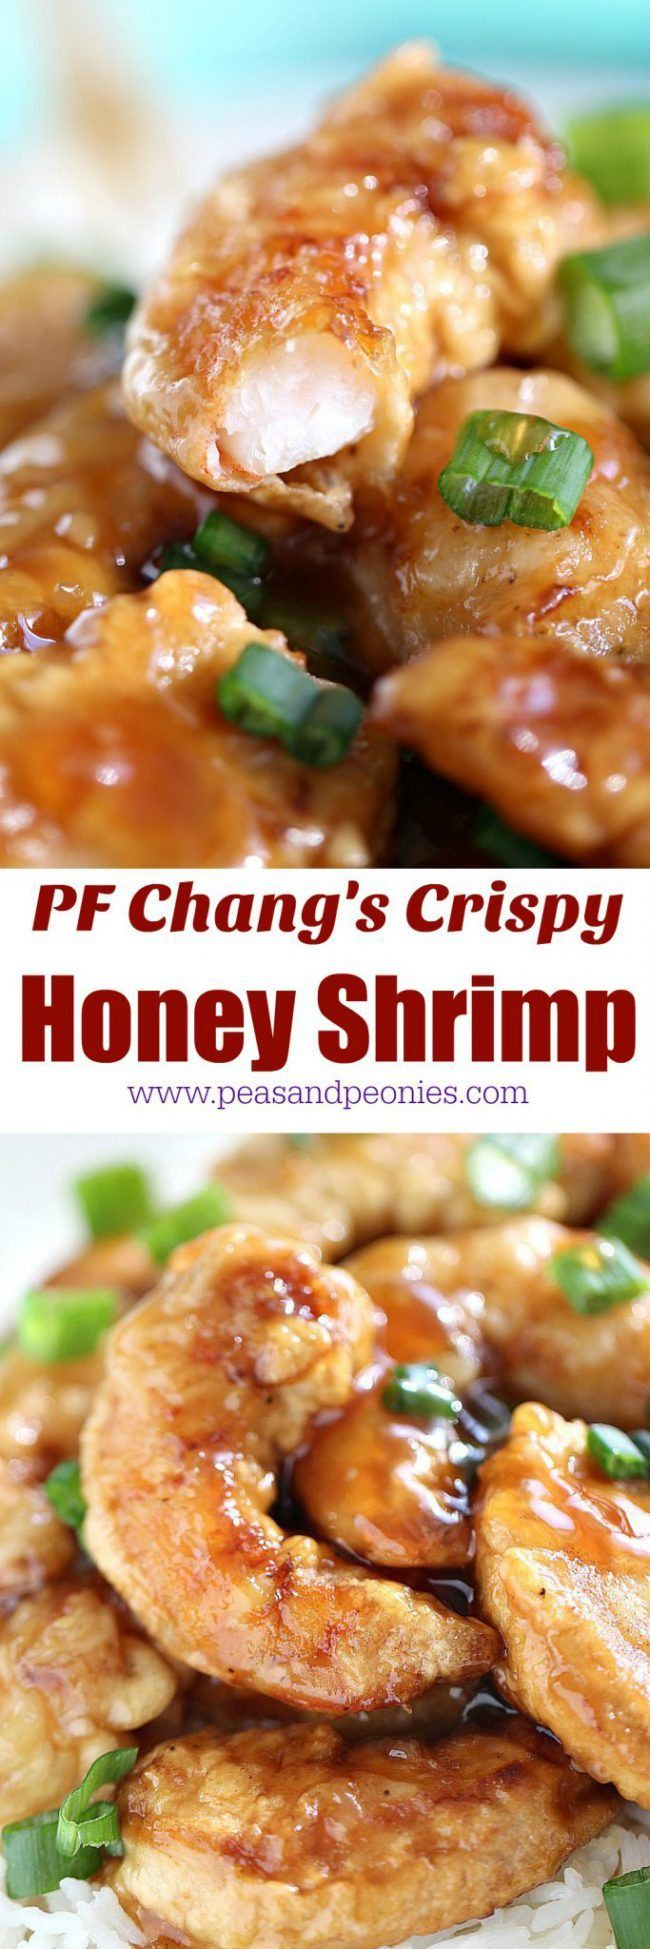 PF Chang's Crispy Honey Shrimp Copycat